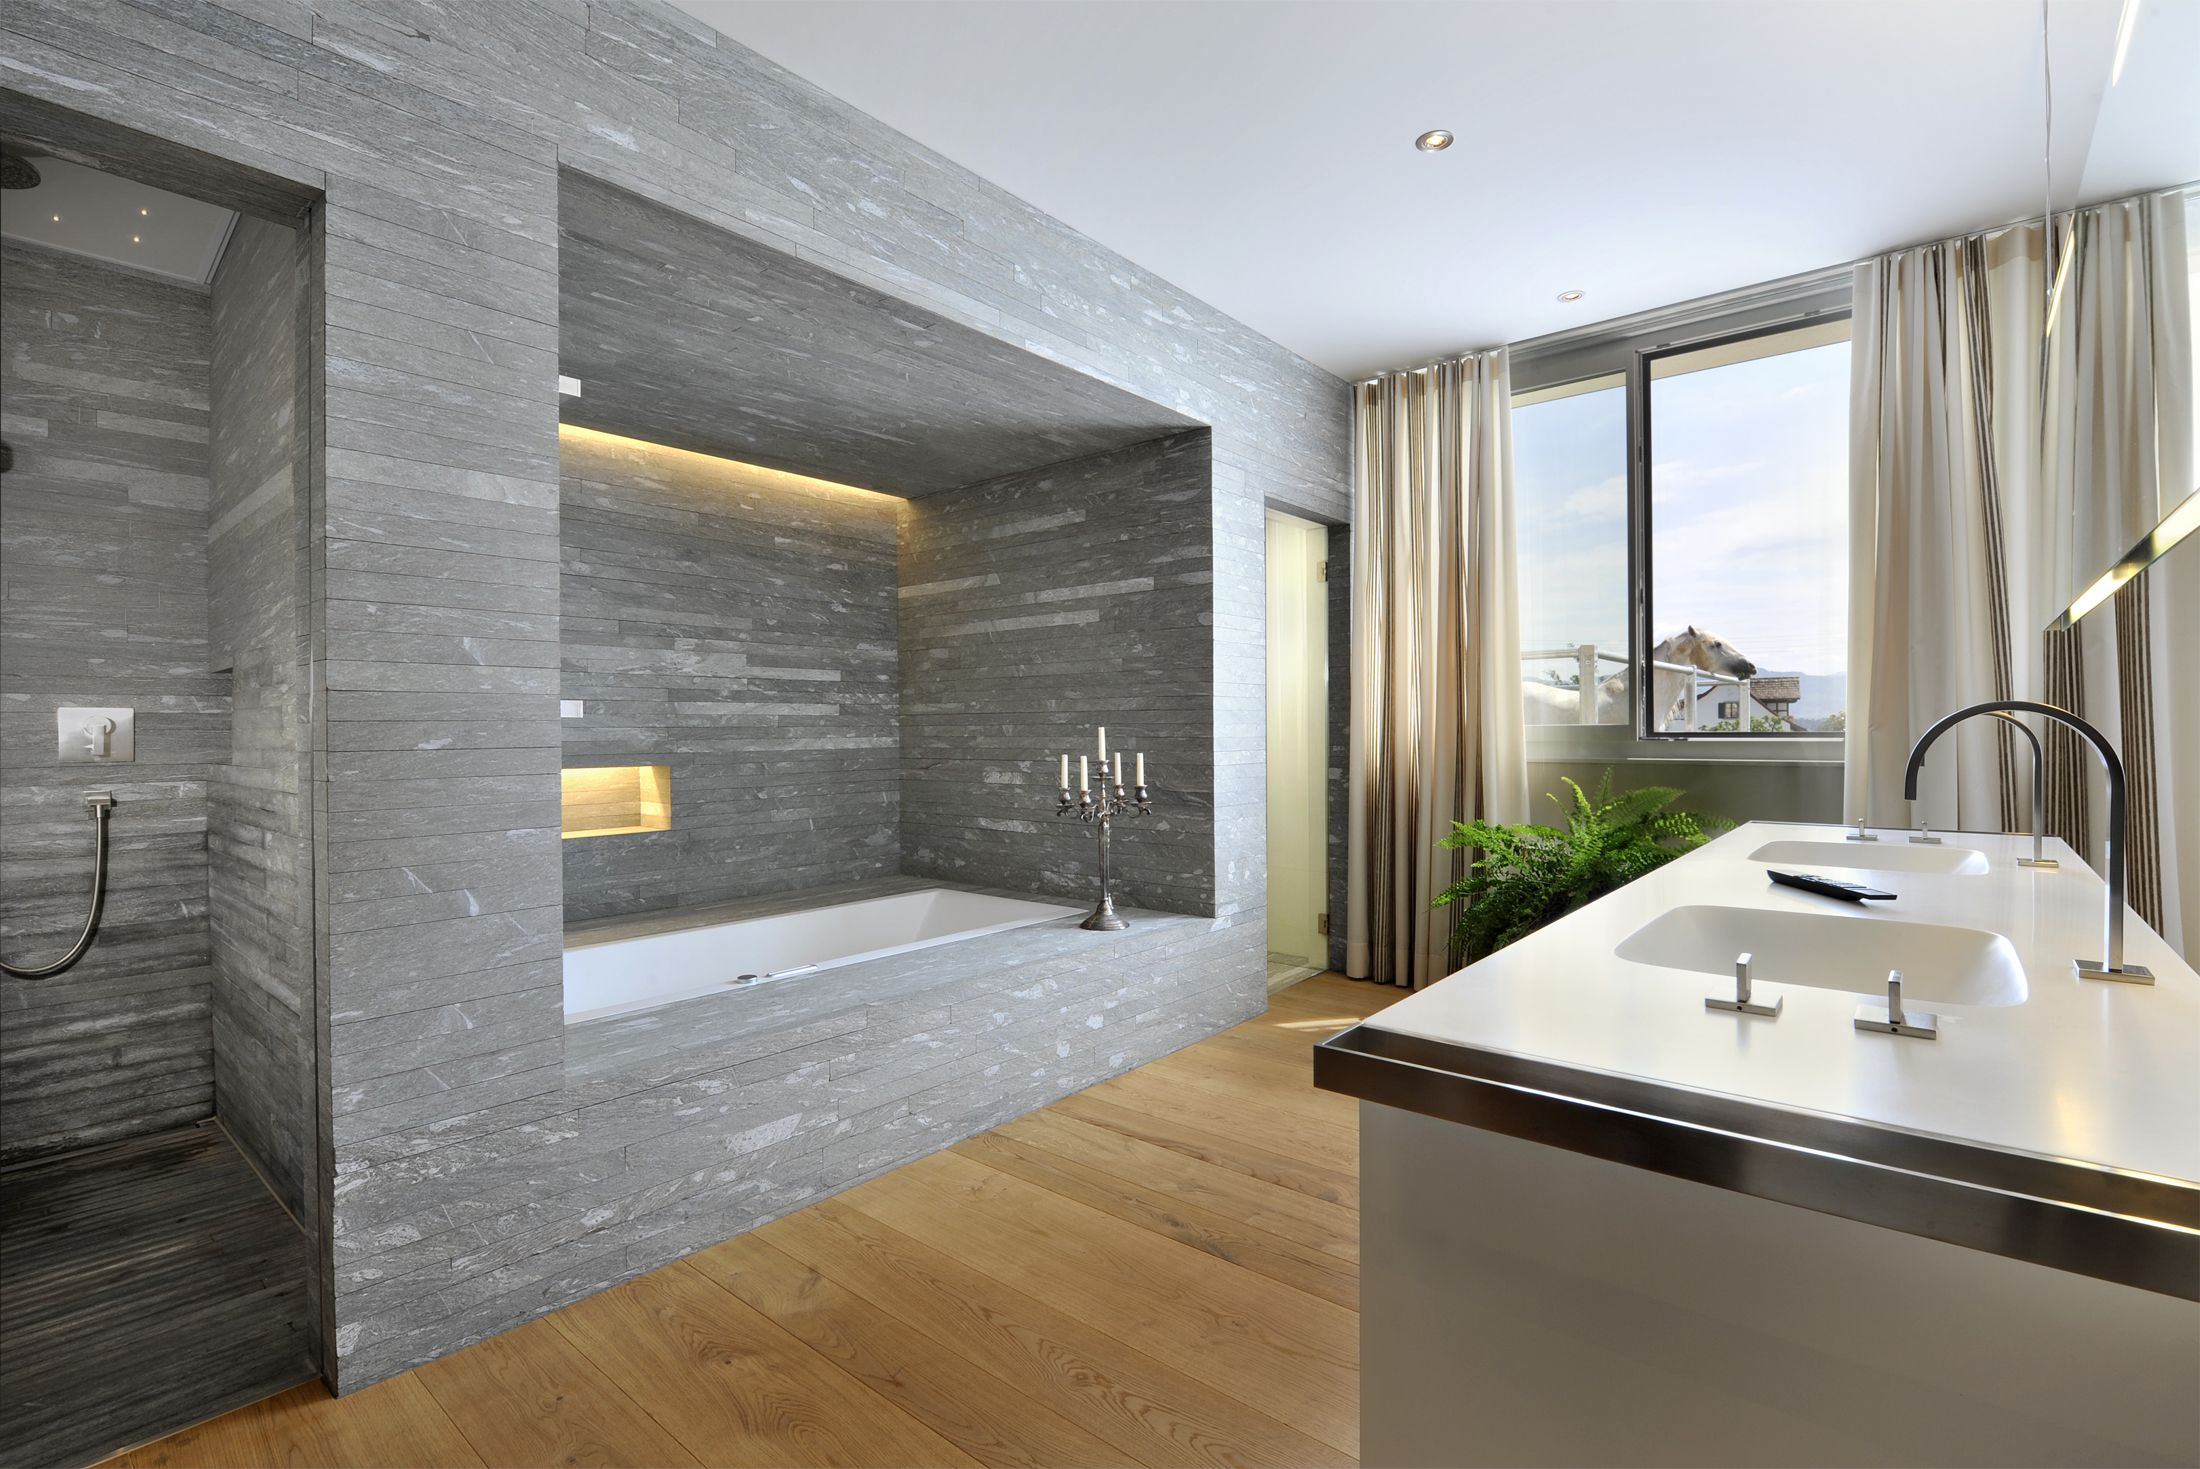 Master bathroom designs and layouts bathroommakeoverssouthbend